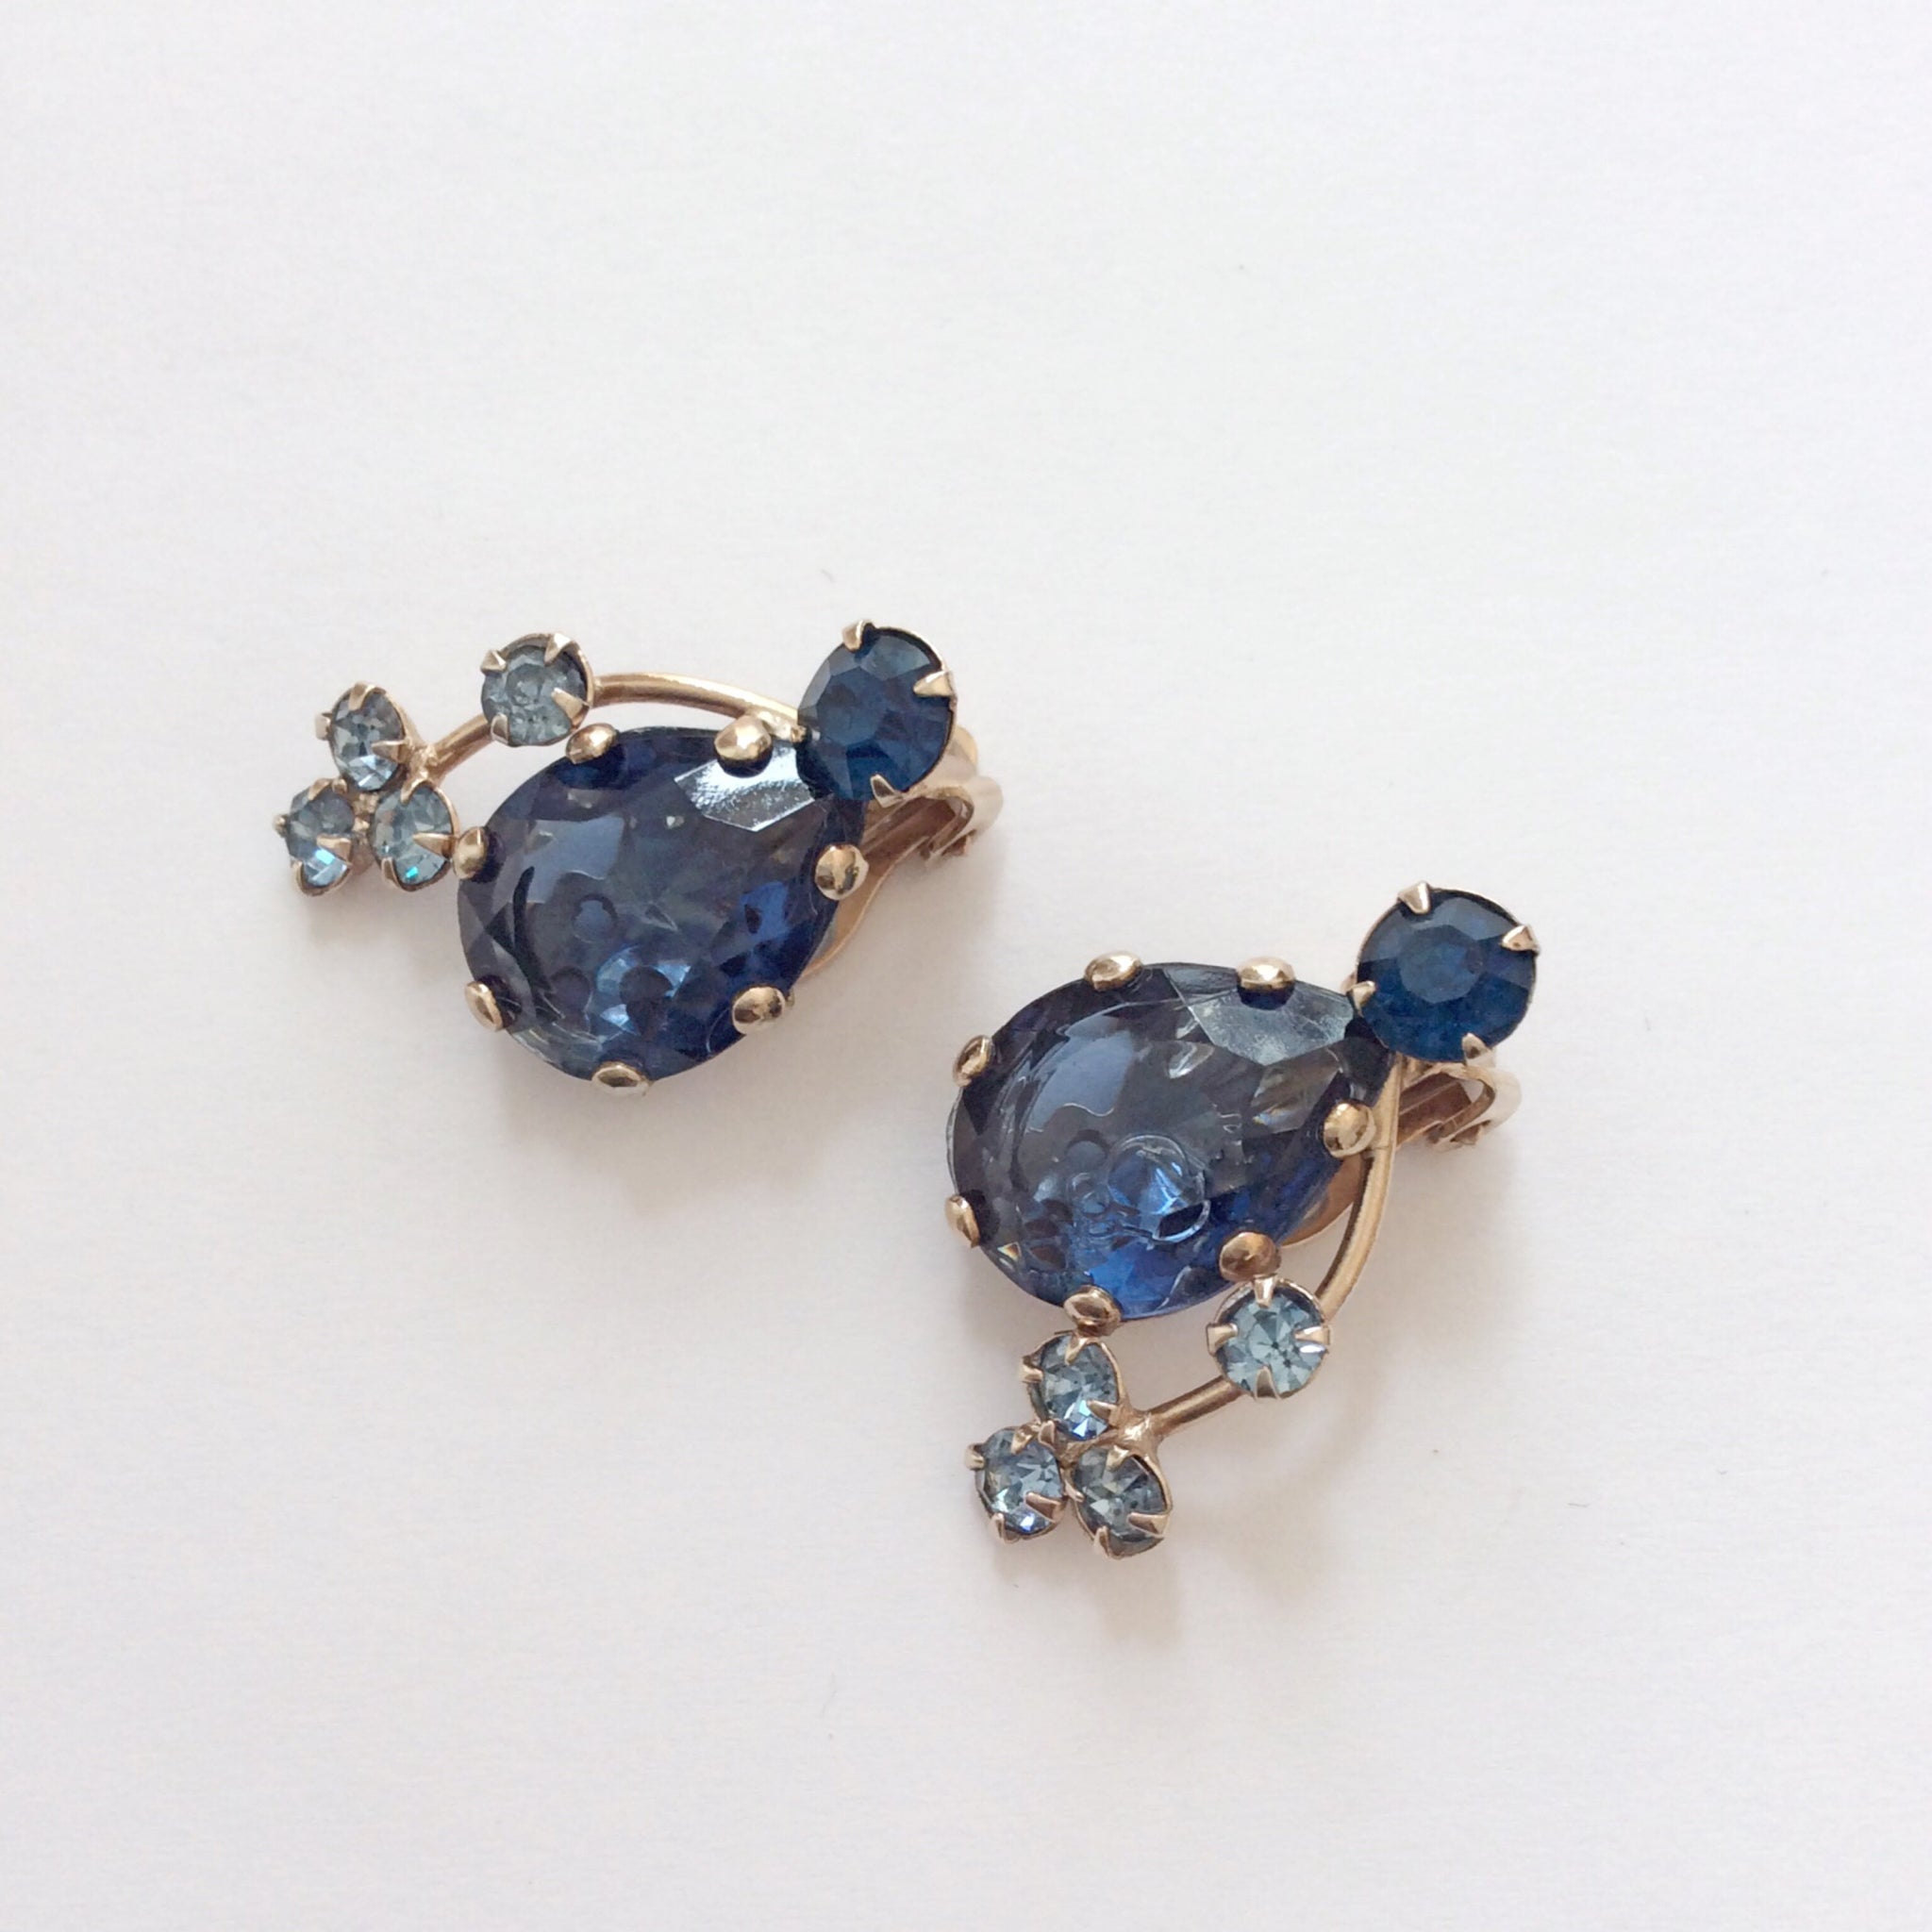 50s Rhinestone Cluster Earrings